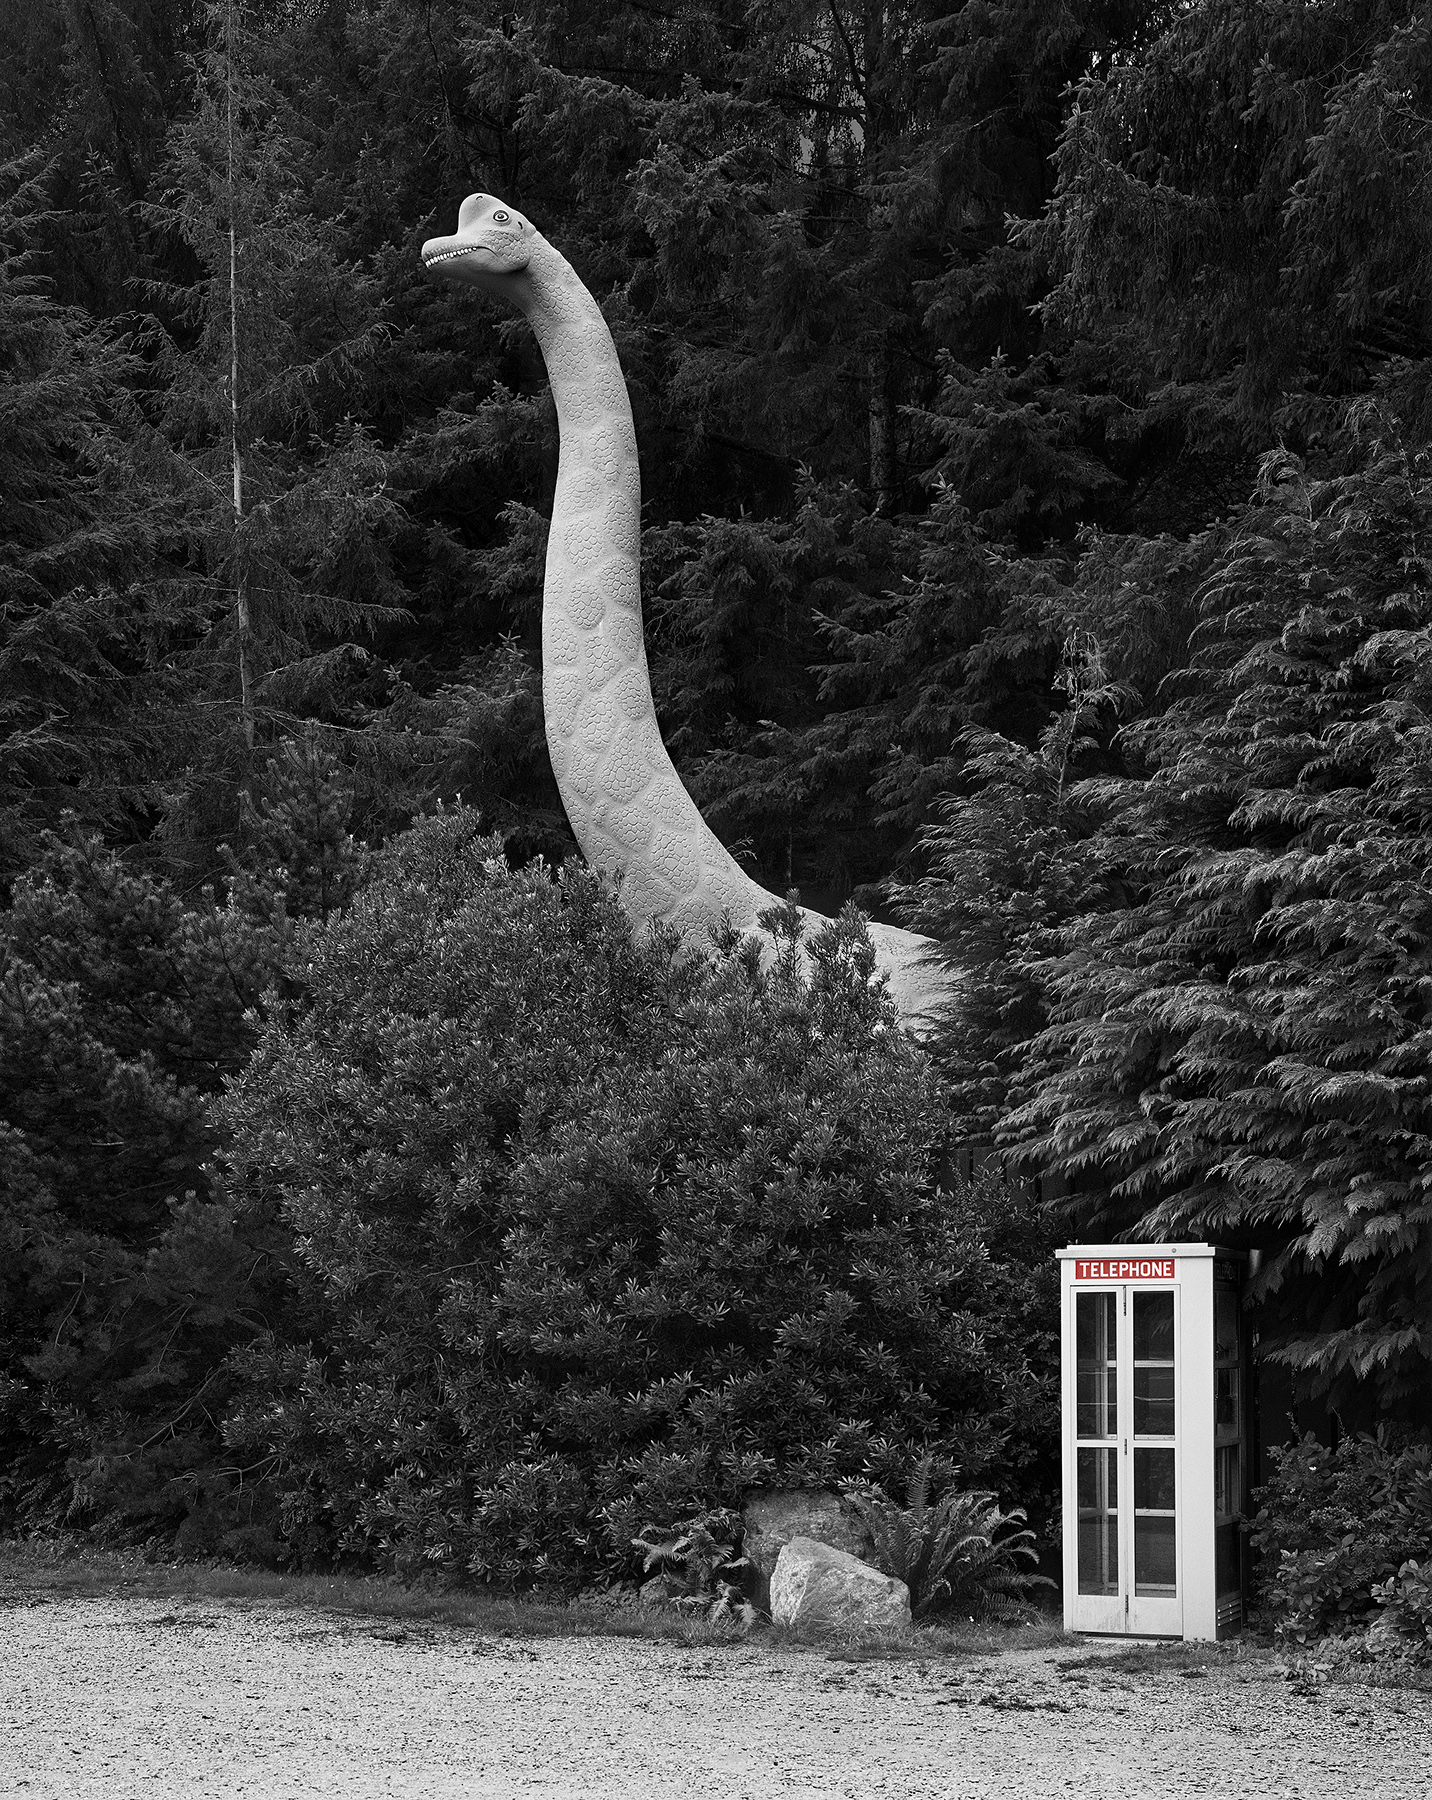 Dinosaur and Telephone Booth, OR